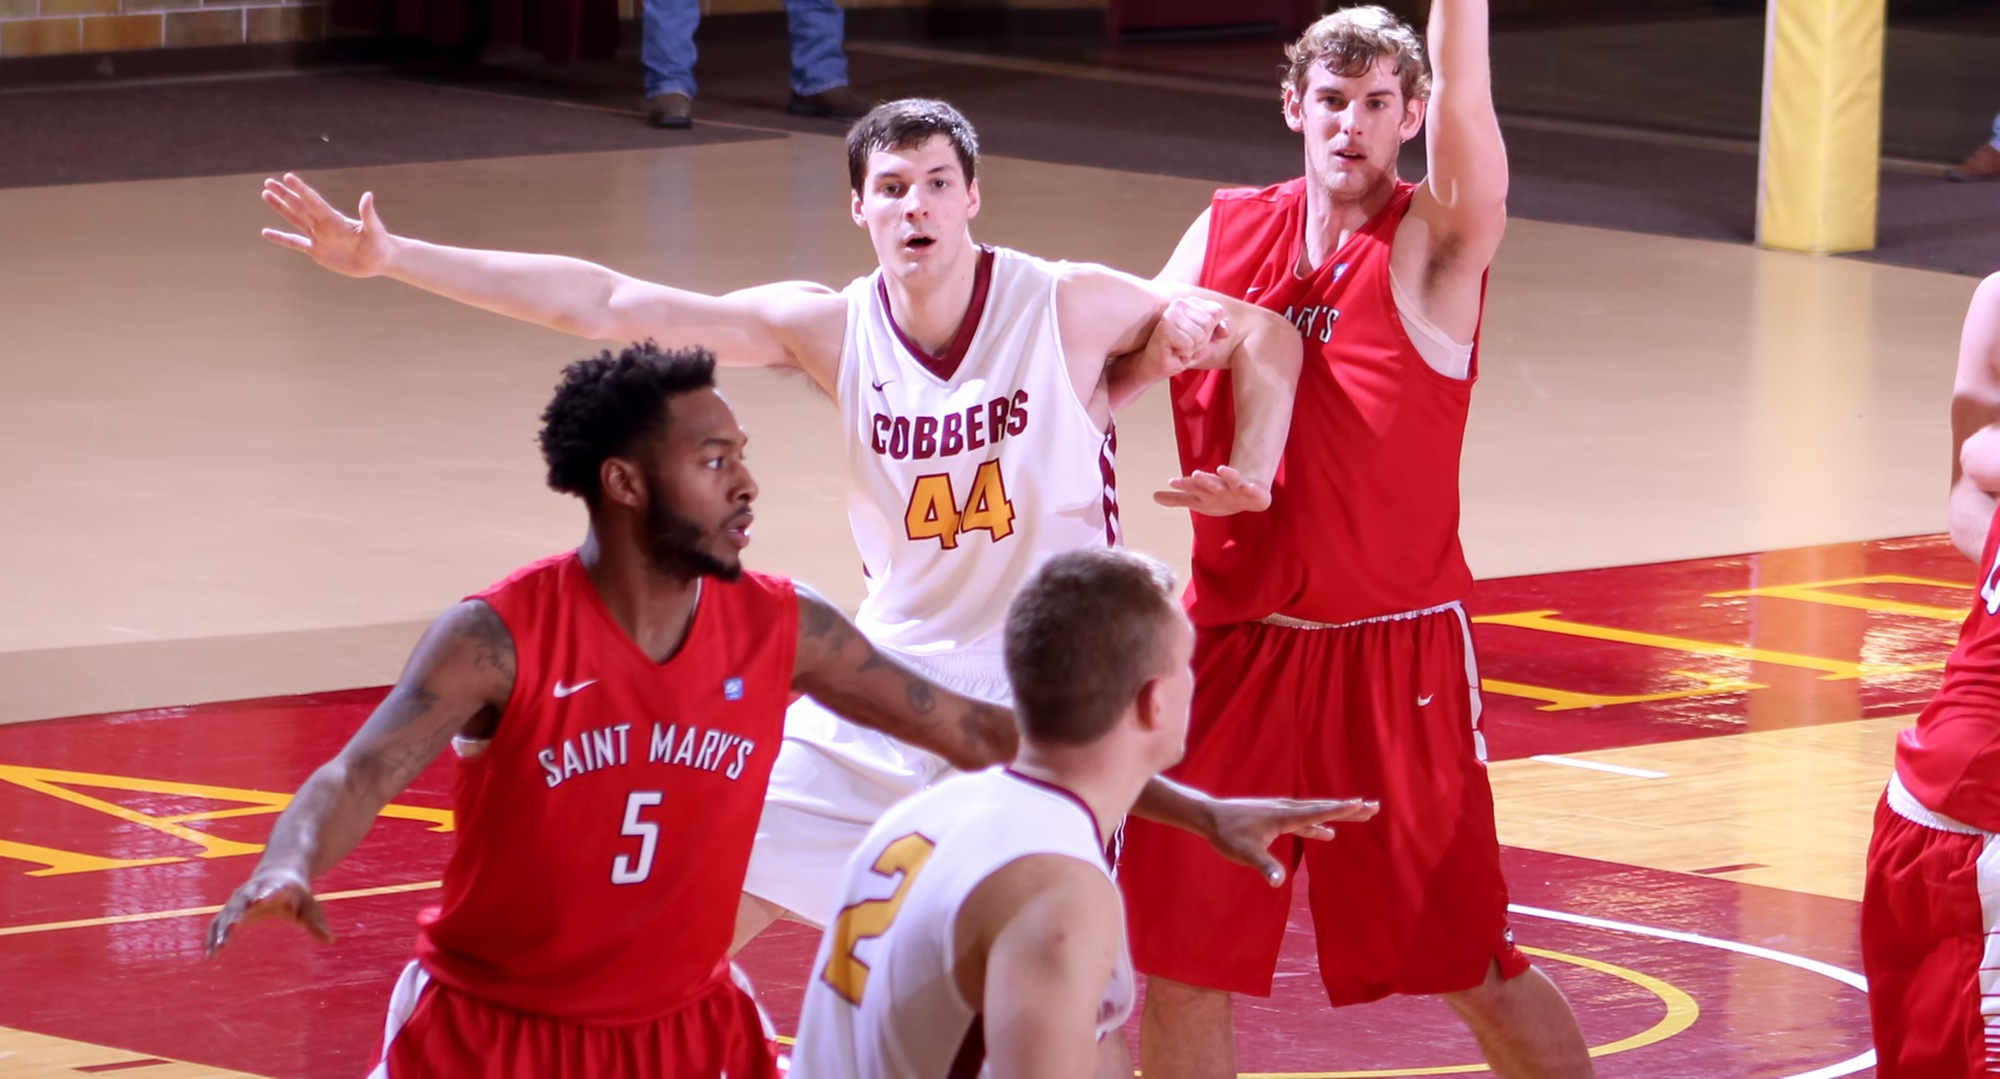 Senior Kevin Wolfe had a career-high 10 rebounds in the Cobbers' 67-64 win at St. Mary's.